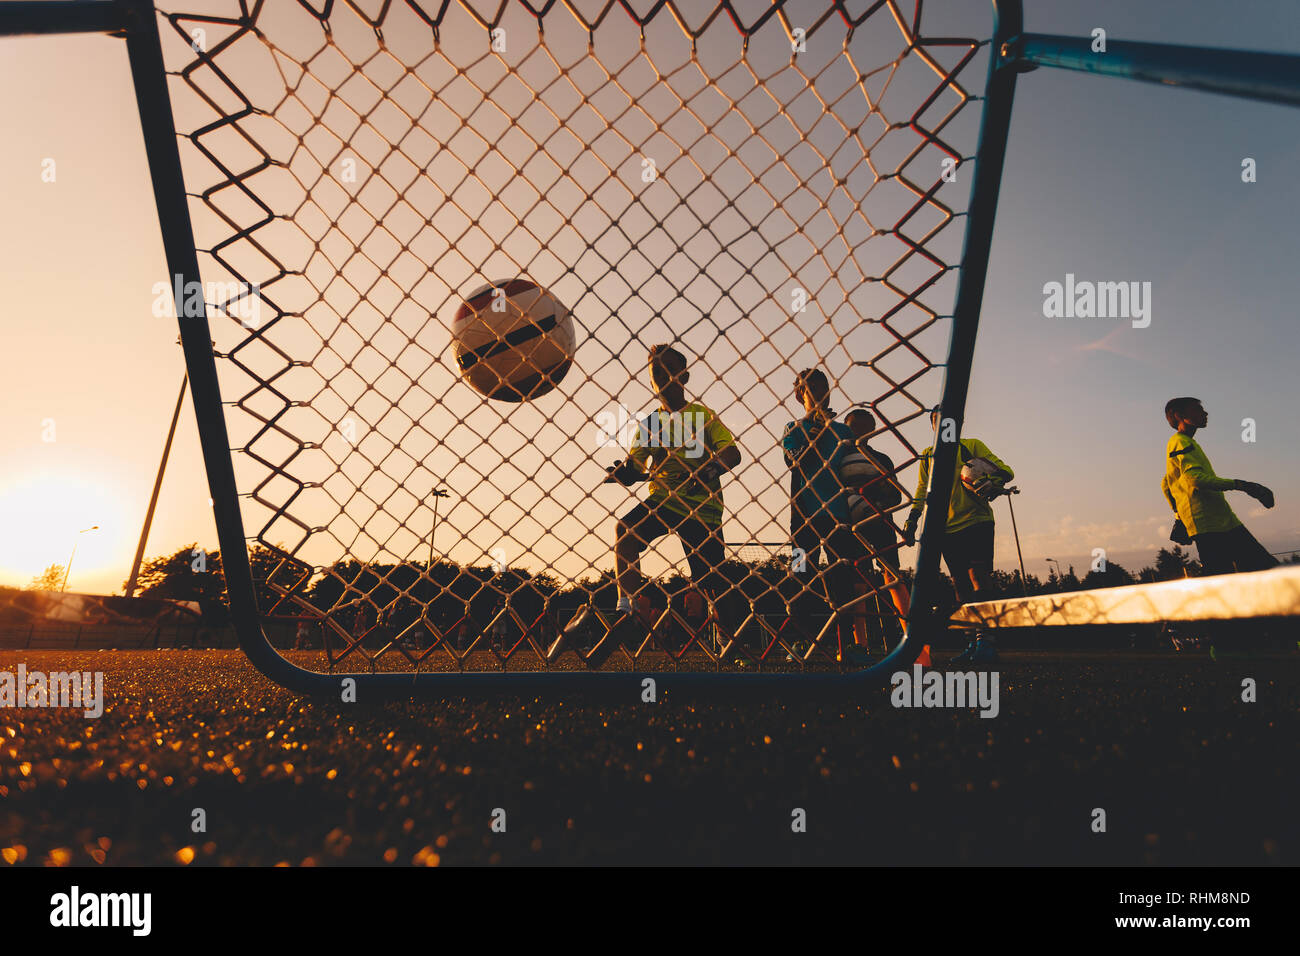 Boys Football Goalkeepers Improving Skills on Soccer Training. Kids Soccer Goalkeeper Training Session. Youth Soccer Goalies Practicing Catching Ball - Stock Image